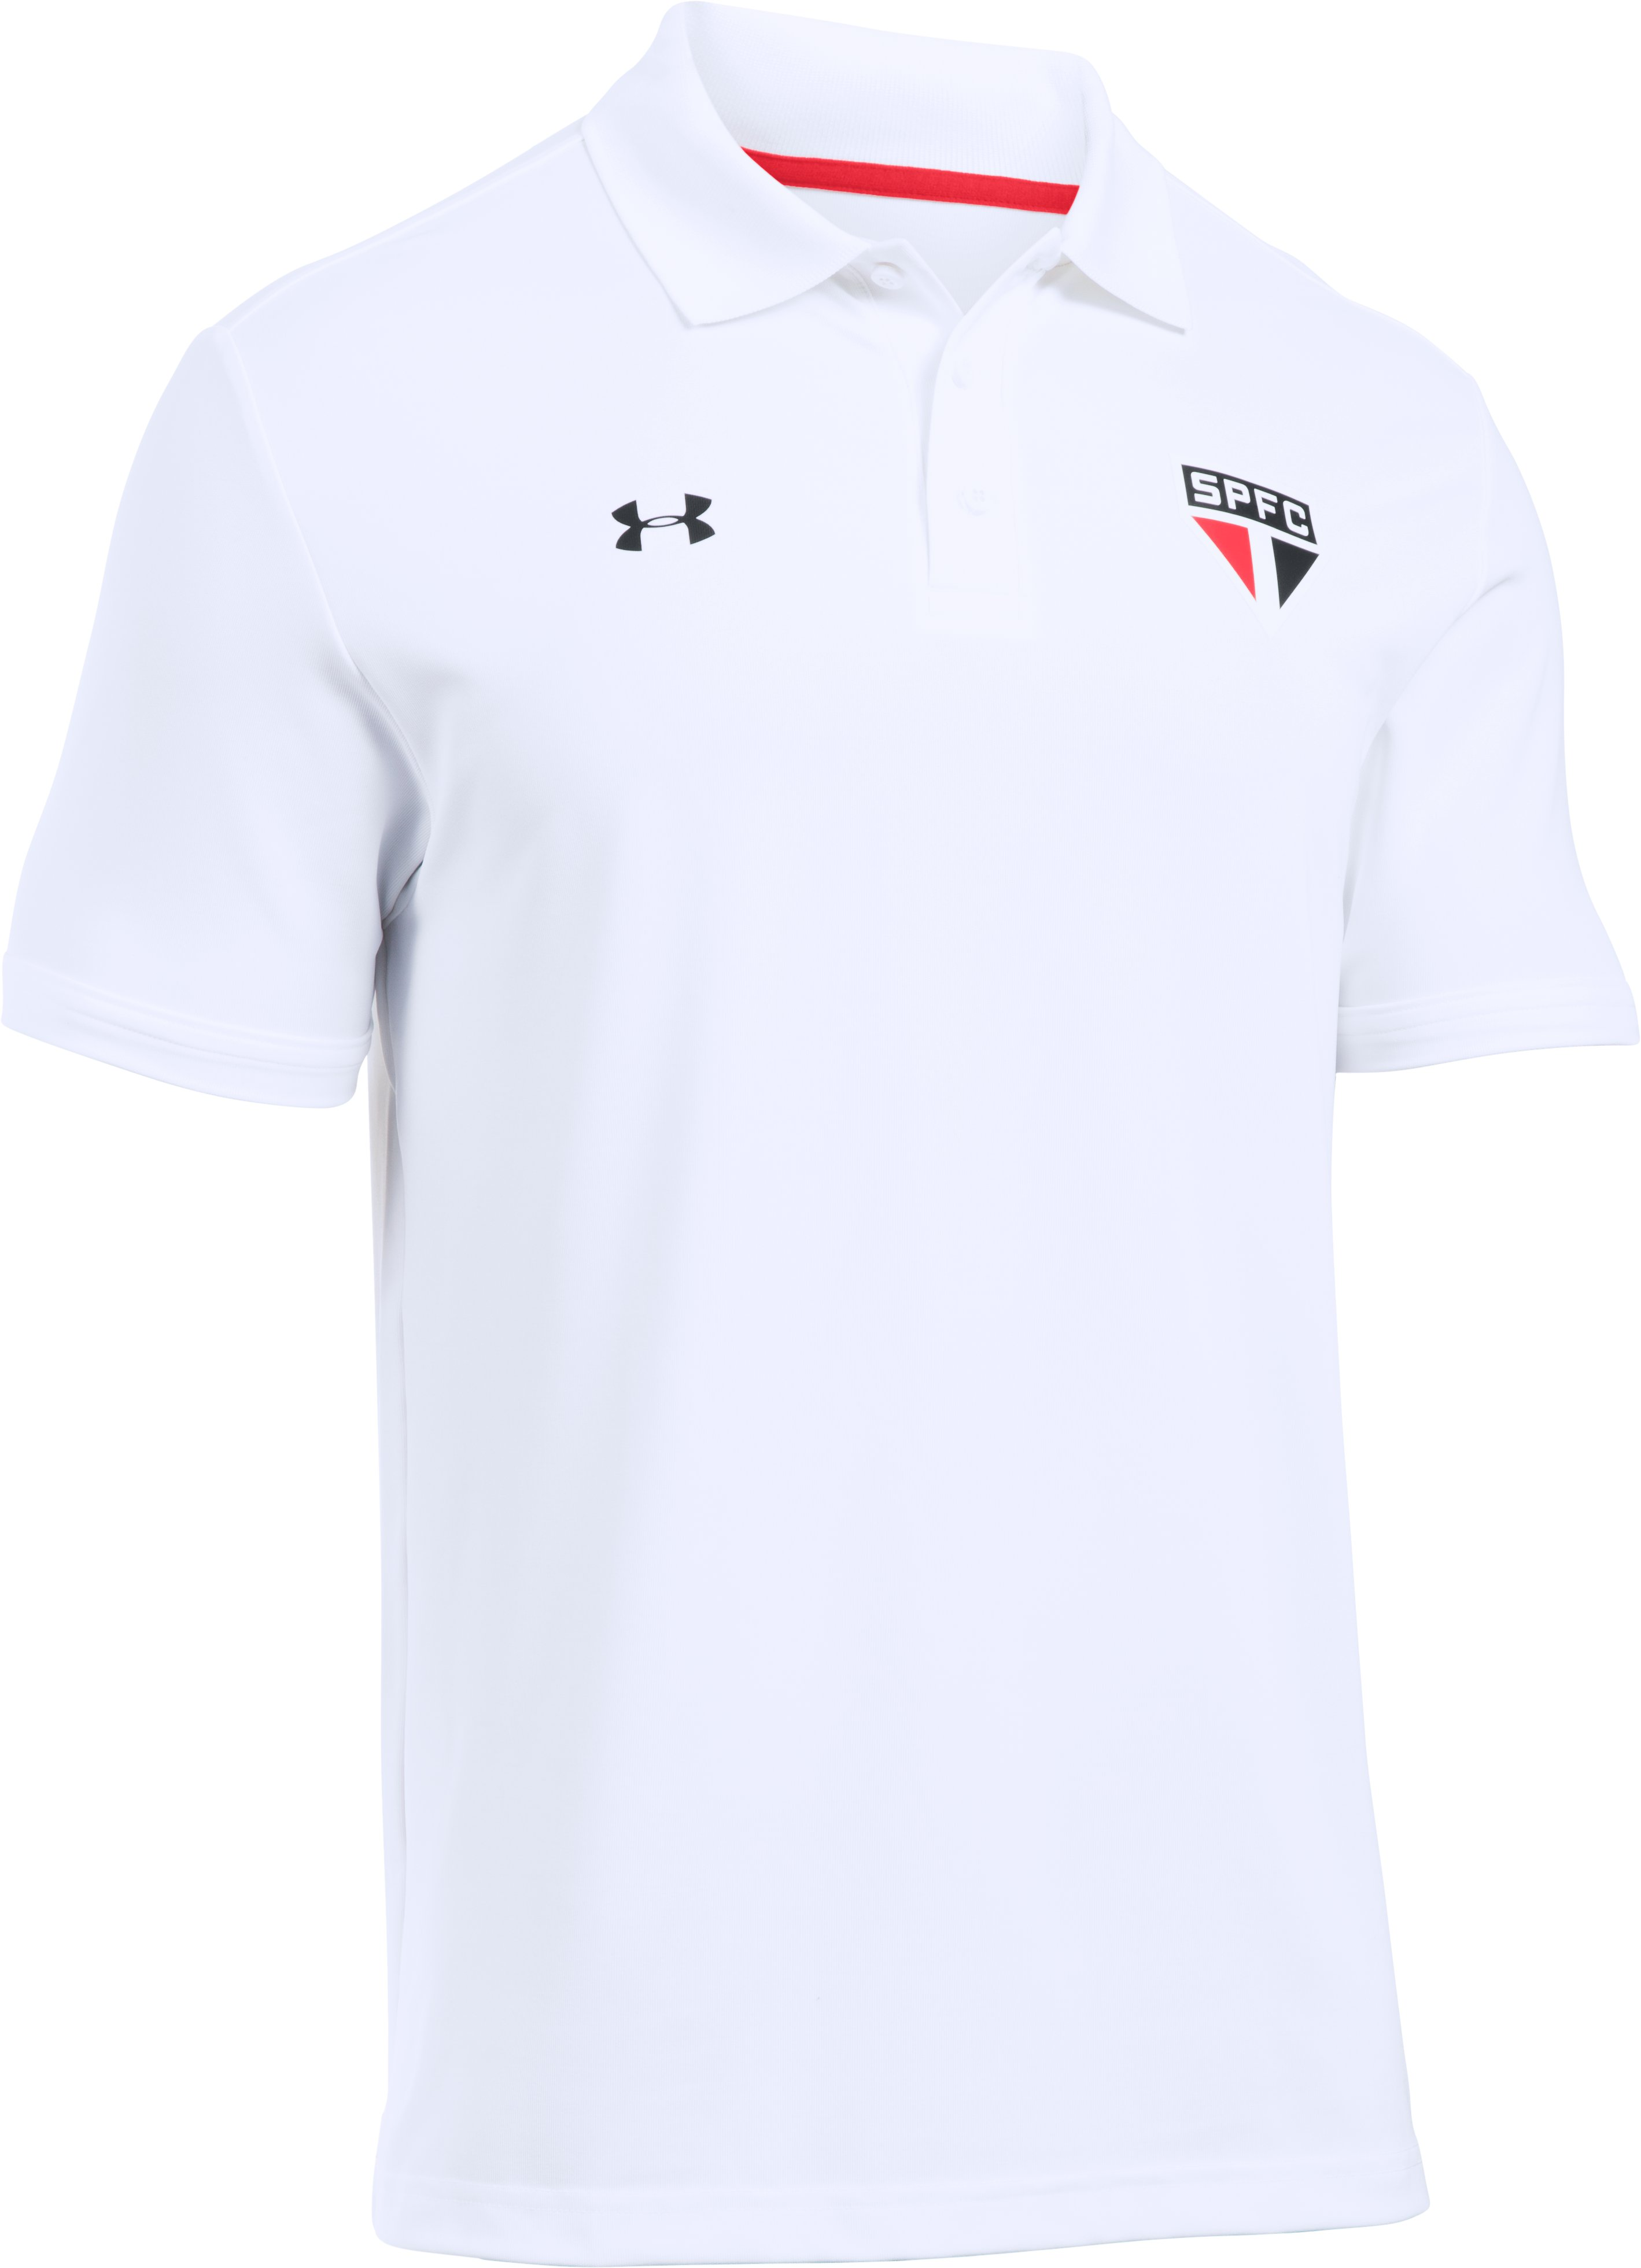 Men's Sao Paulo 15/16 UA Performance Polo, White, undefined